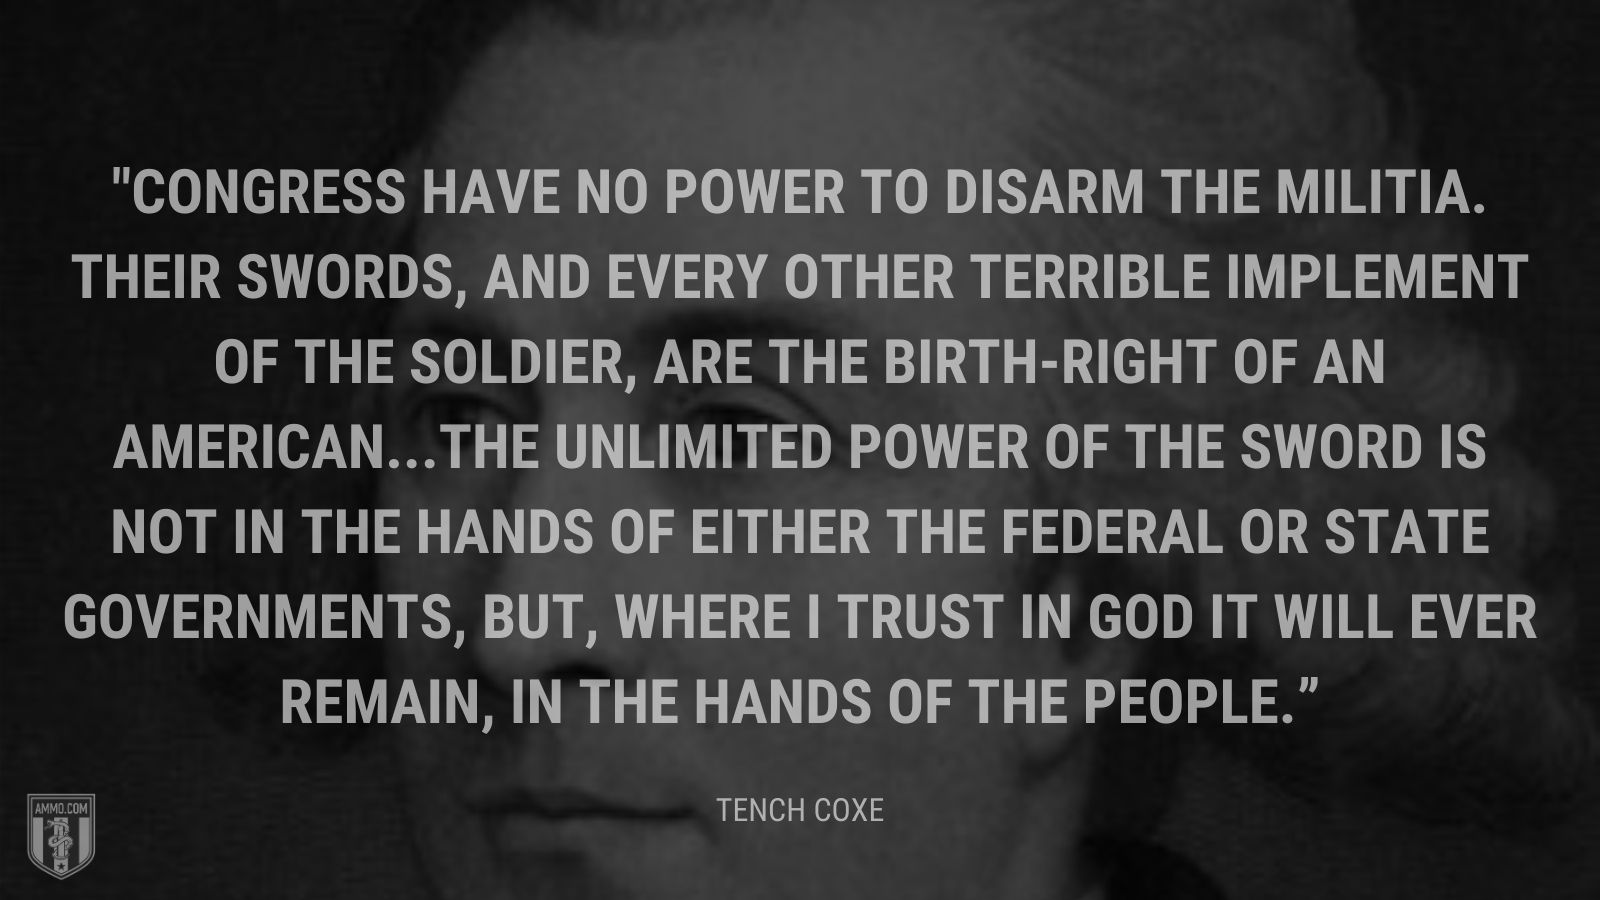 """Congress have no power to disarm the militia. Their swords, and every other terrible implement of the soldier, are the birth-right of an American...The unlimited power of the sword is not in the hands of either the federal or state governments, but, where I trust in God it will ever remain, in the hands of the people."" - Tench Coxe"